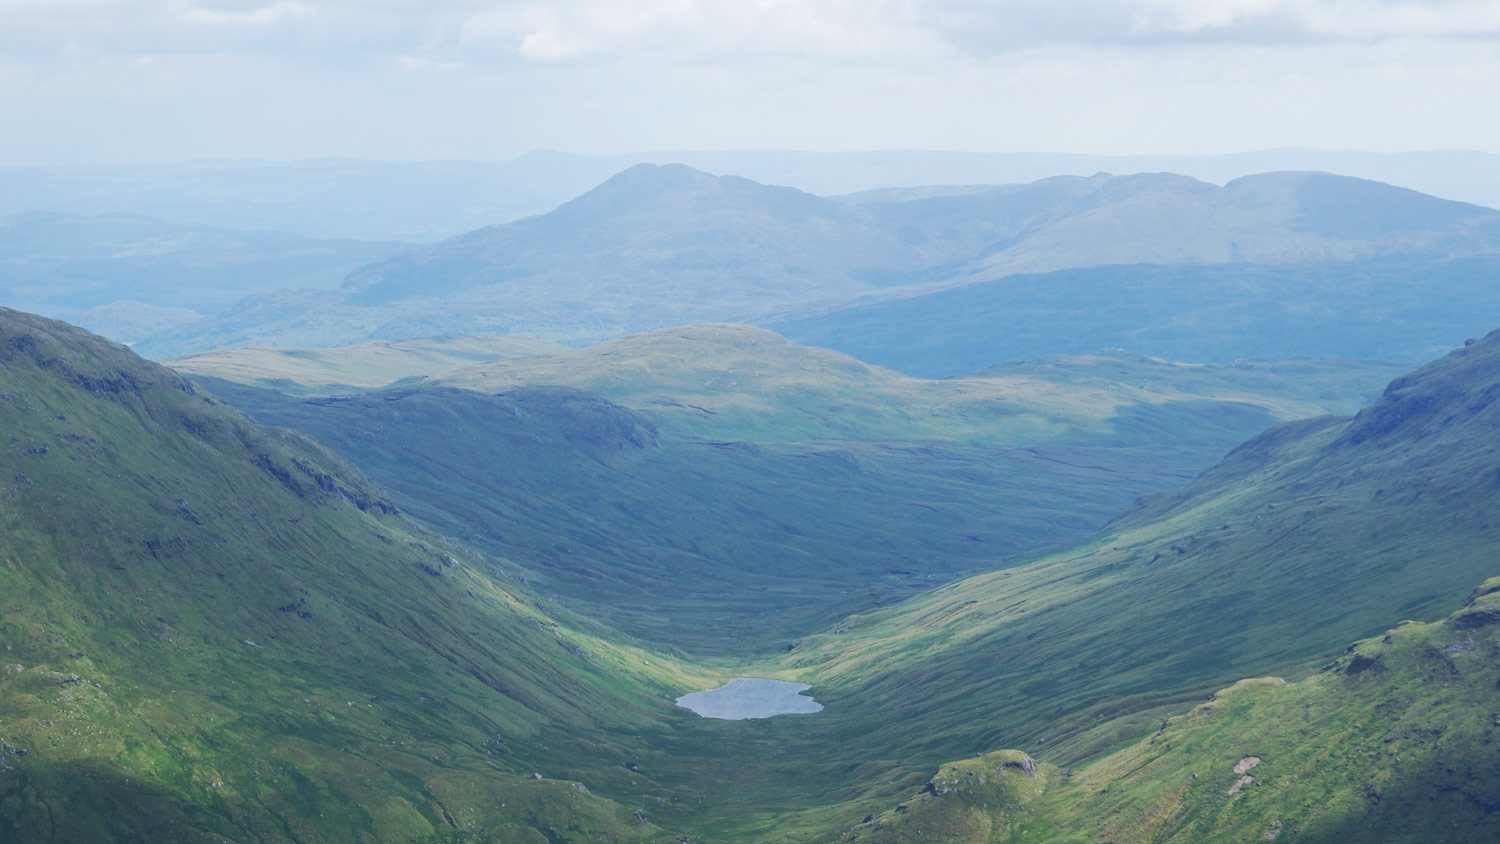 Looking south east from Beinn 'a Chroin.